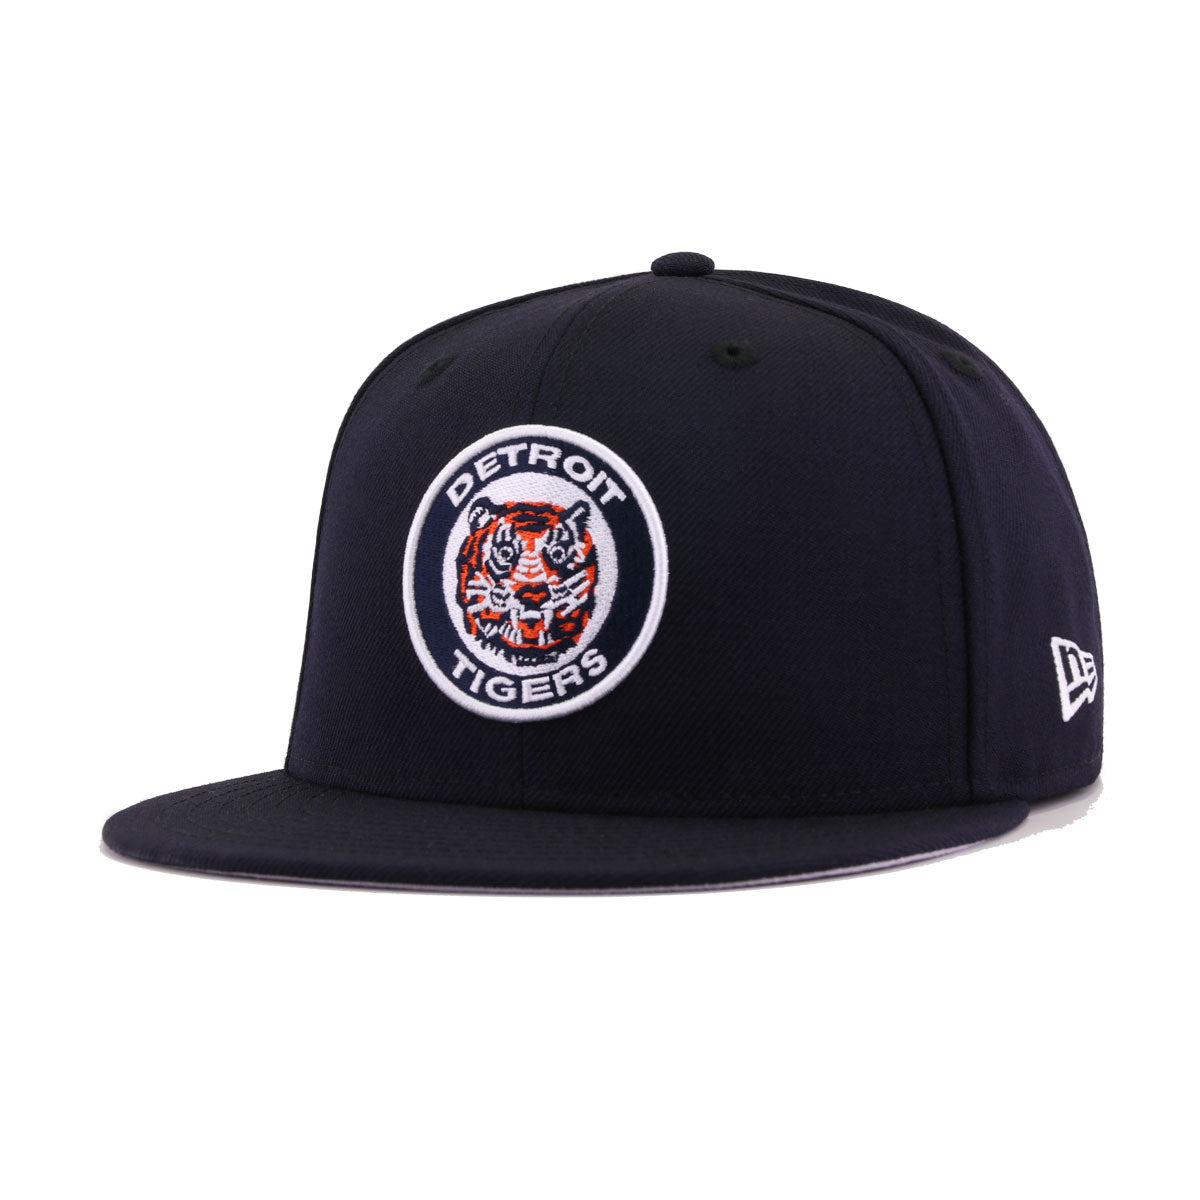 Detroit Tigers Navy Tiger Cooperstown New Era 59Fifty Fitted